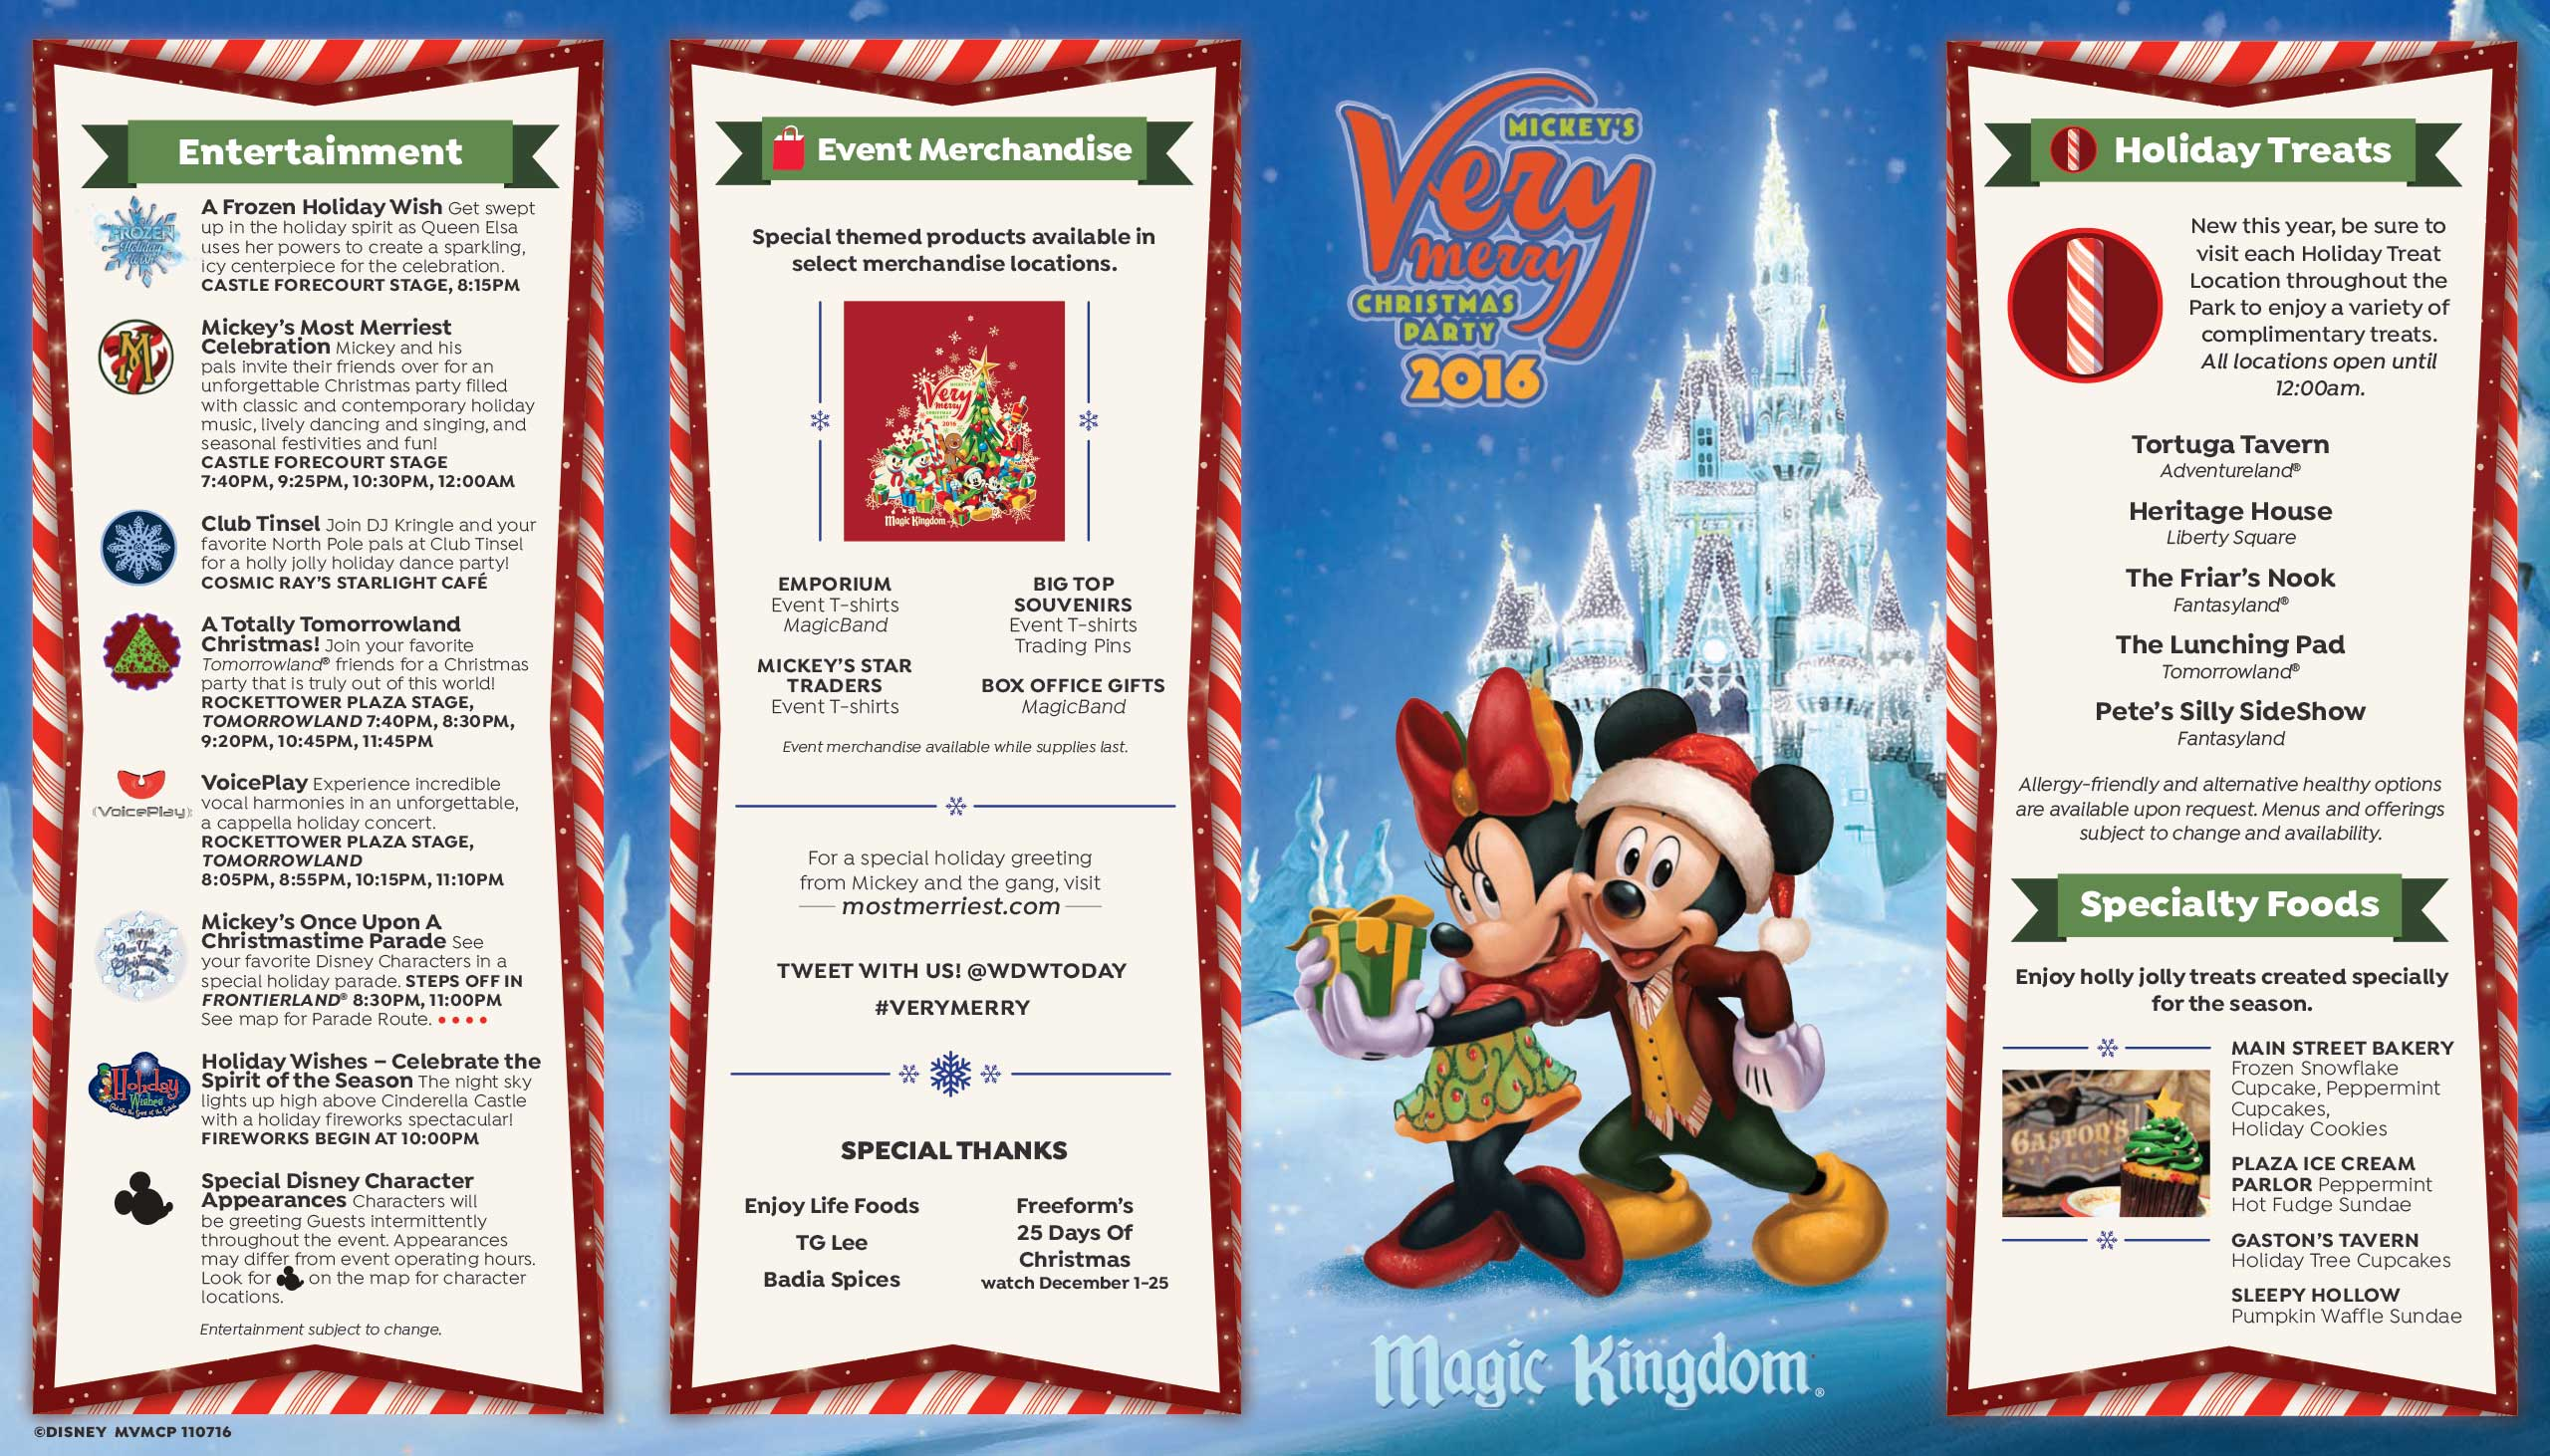 Mickey's Very Merry Christmas Party 2016 guide map - Photo 1 of 2